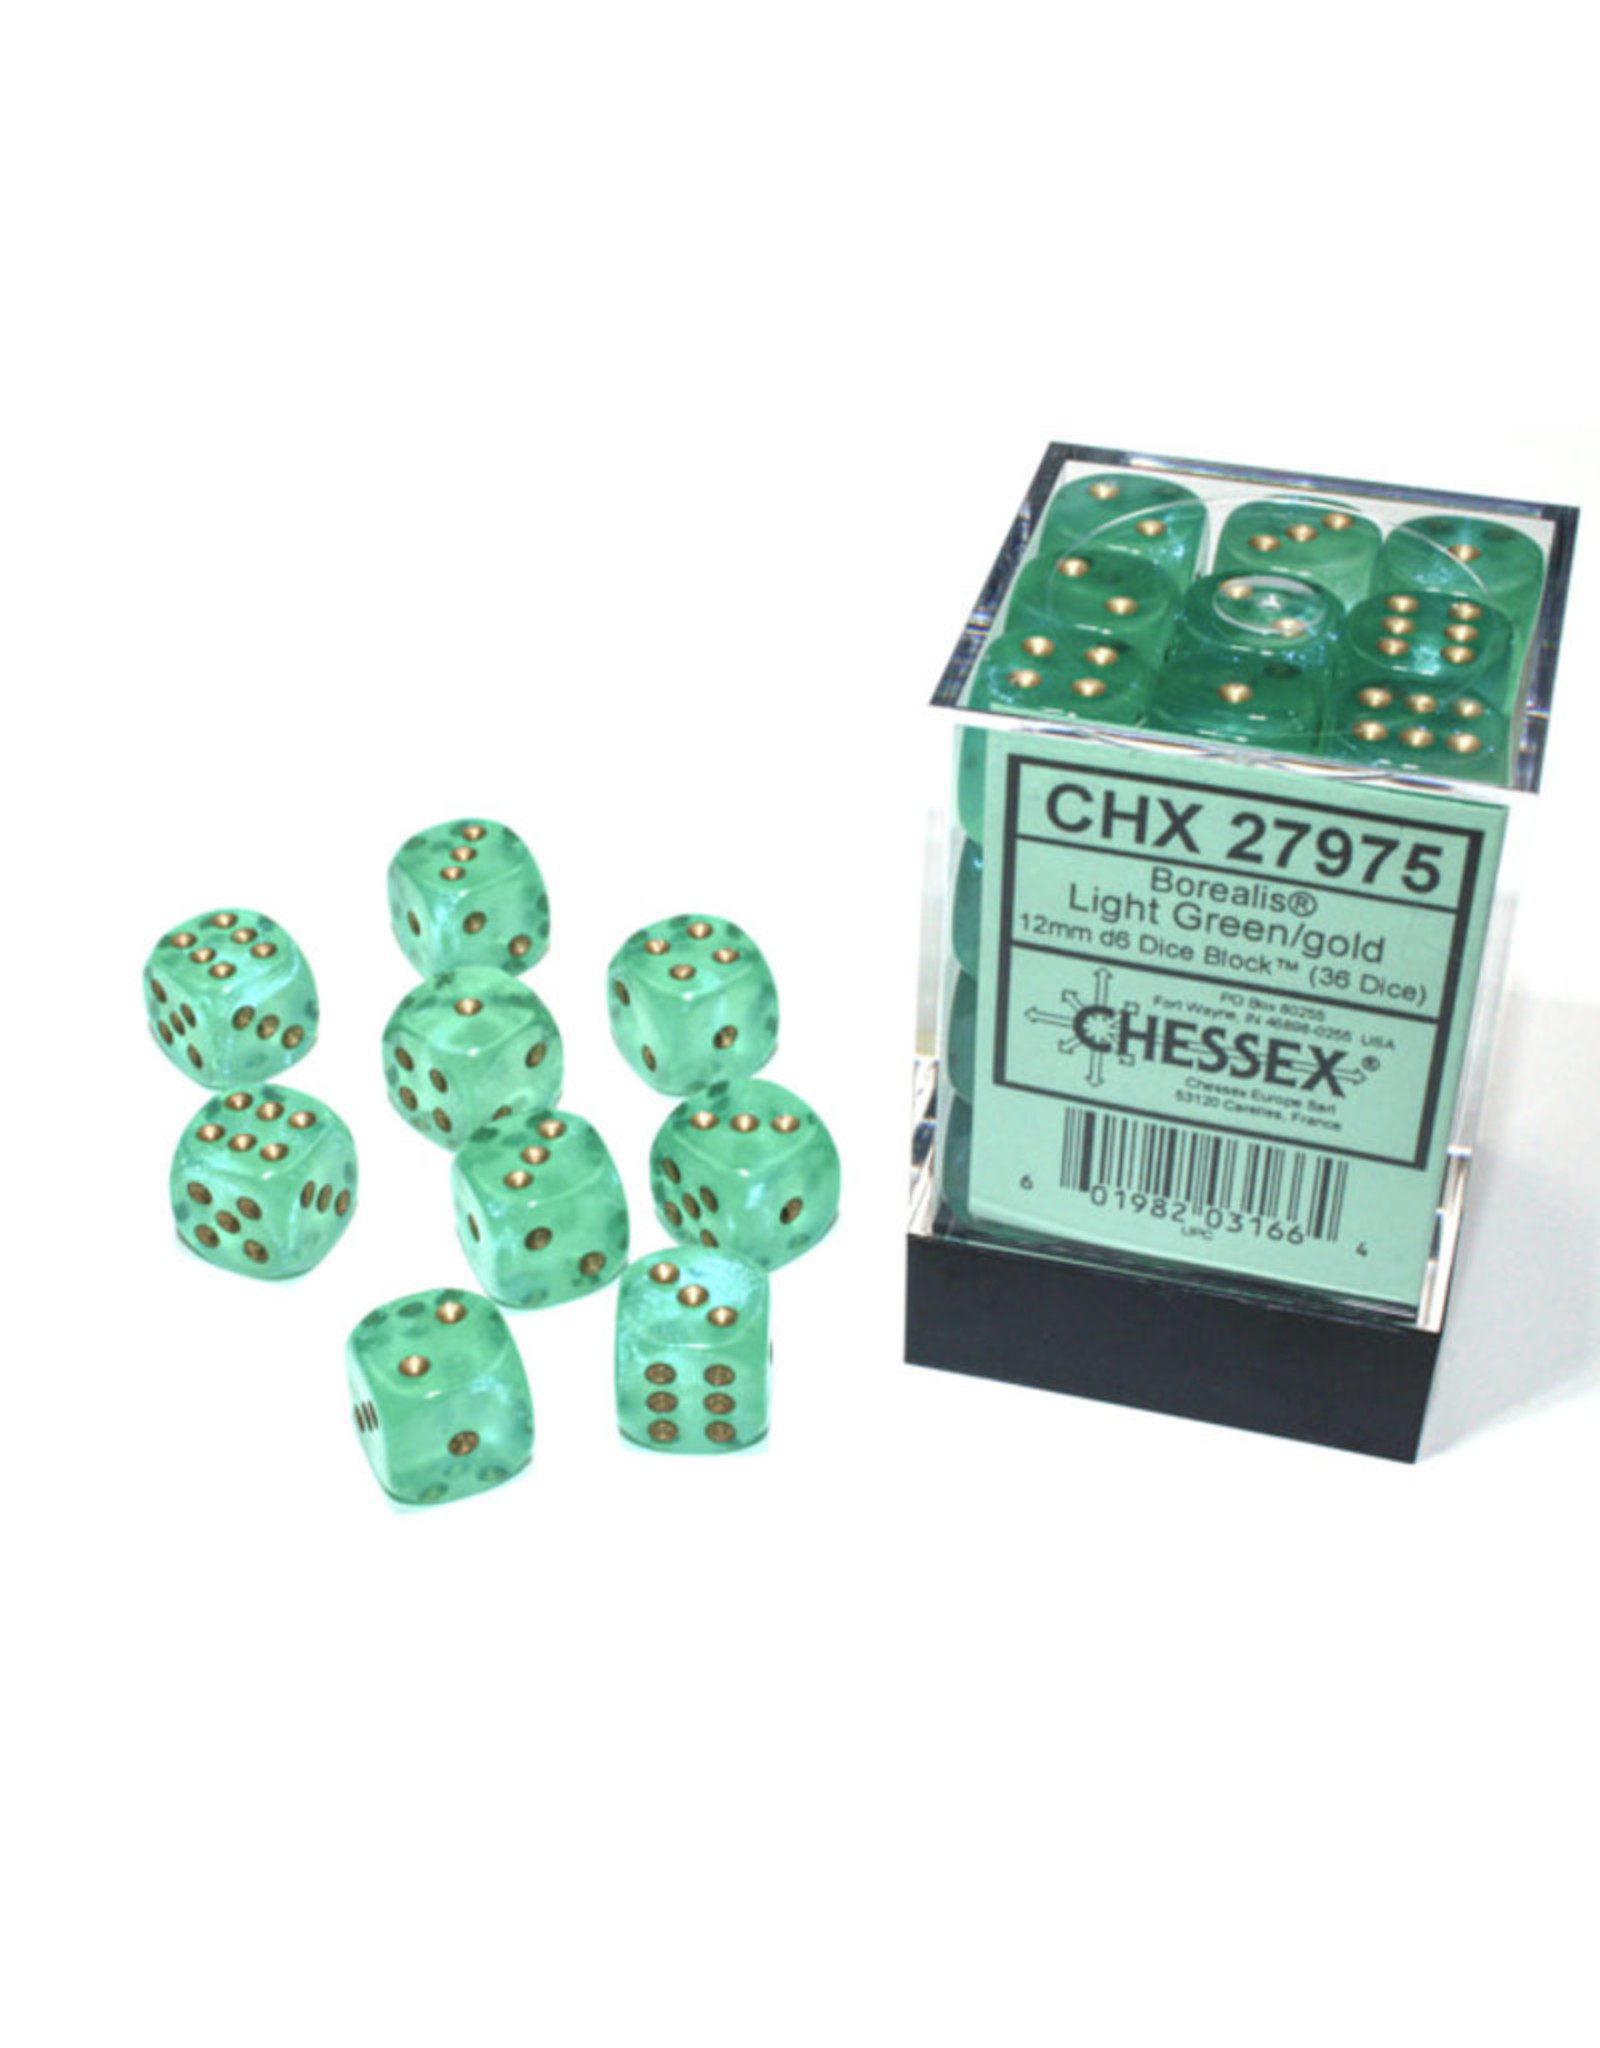 CHX 27975 12MM D6 BOREALIS LIGHT GREEN/GOLD LUMINARY DICE